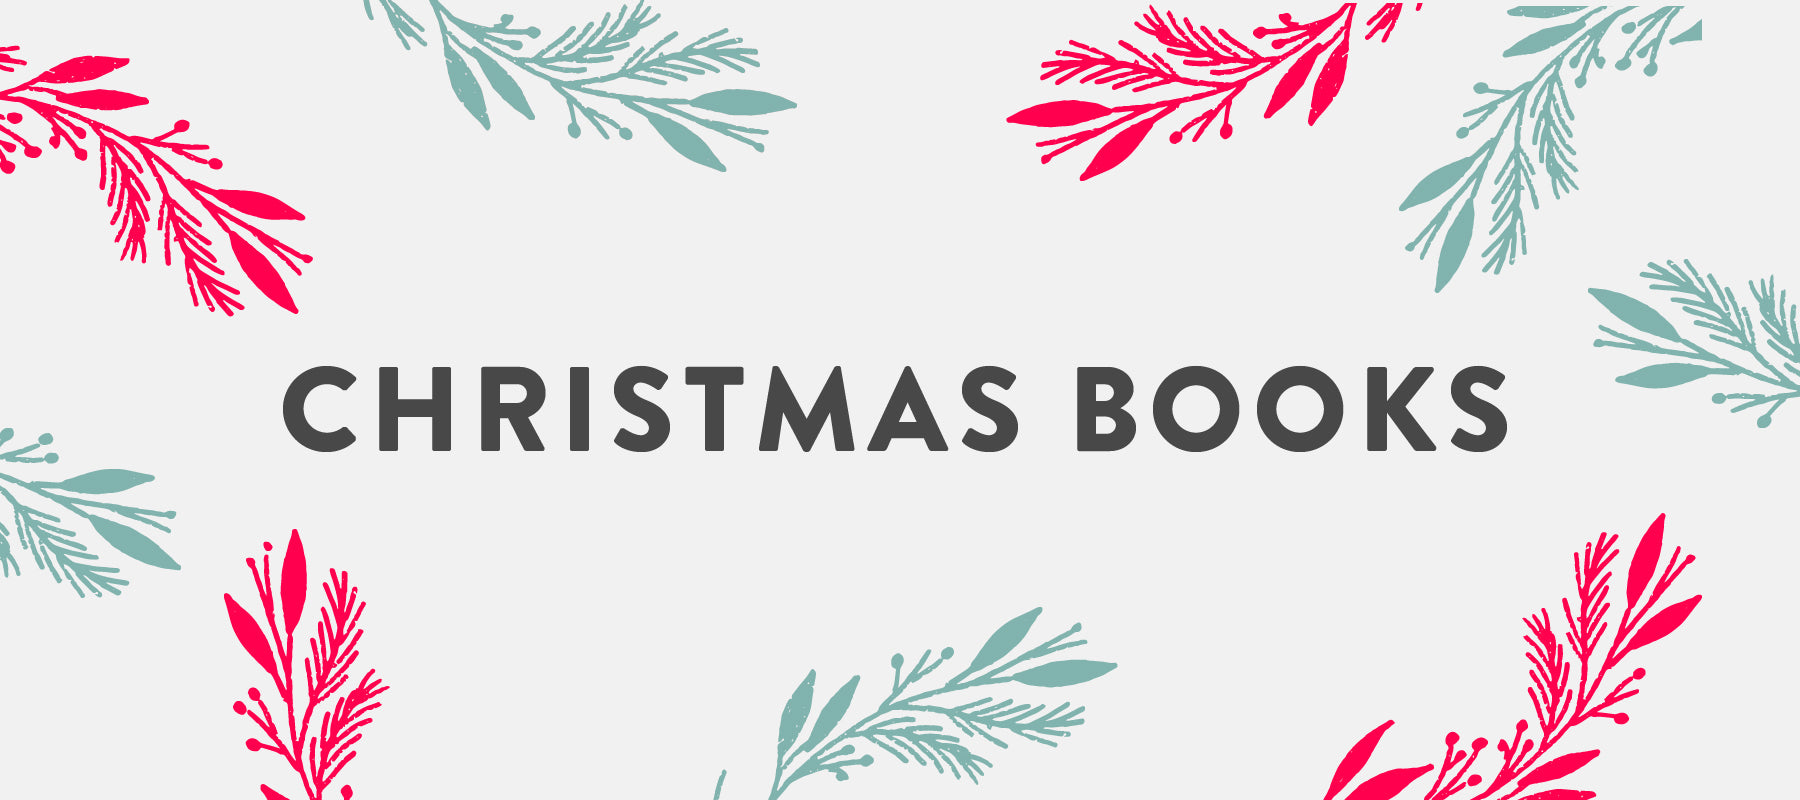 Fun Books for Christmas...and all year round